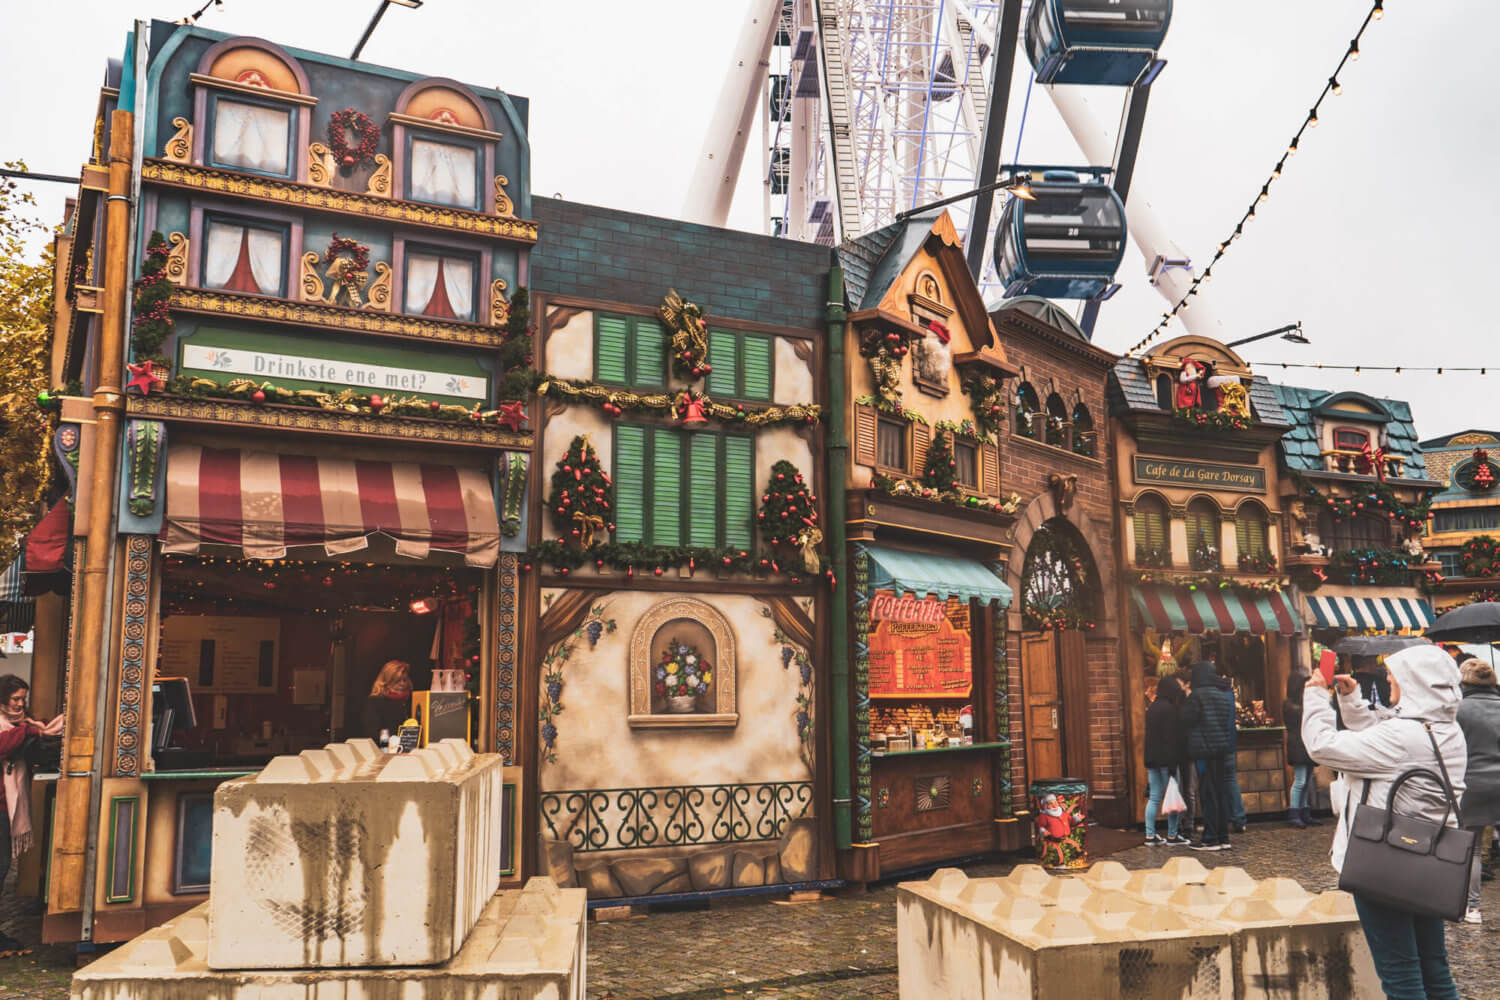 d12512a17 Düsseldorf Christmas Markets Guide 2019: Where to Go, What to Eat ...